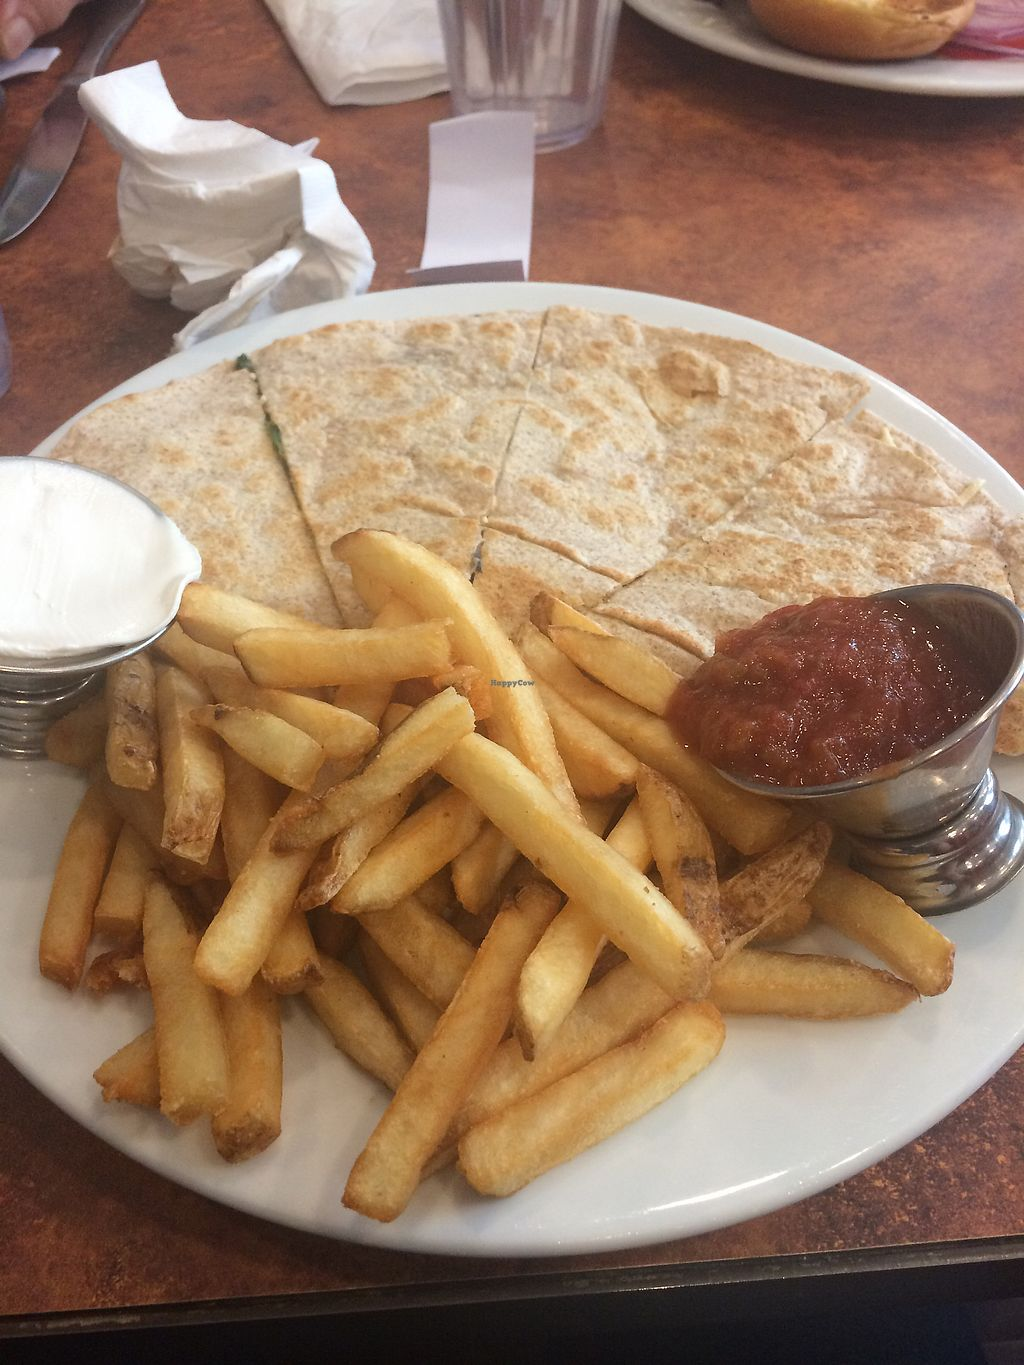 "Photo of Morristown Pancake House  by <a href=""/members/profile/cassienat"">cassienat</a> <br/>veggie quesadillas  <br/> September 2, 2017  - <a href='/contact/abuse/image/54830/299872'>Report</a>"